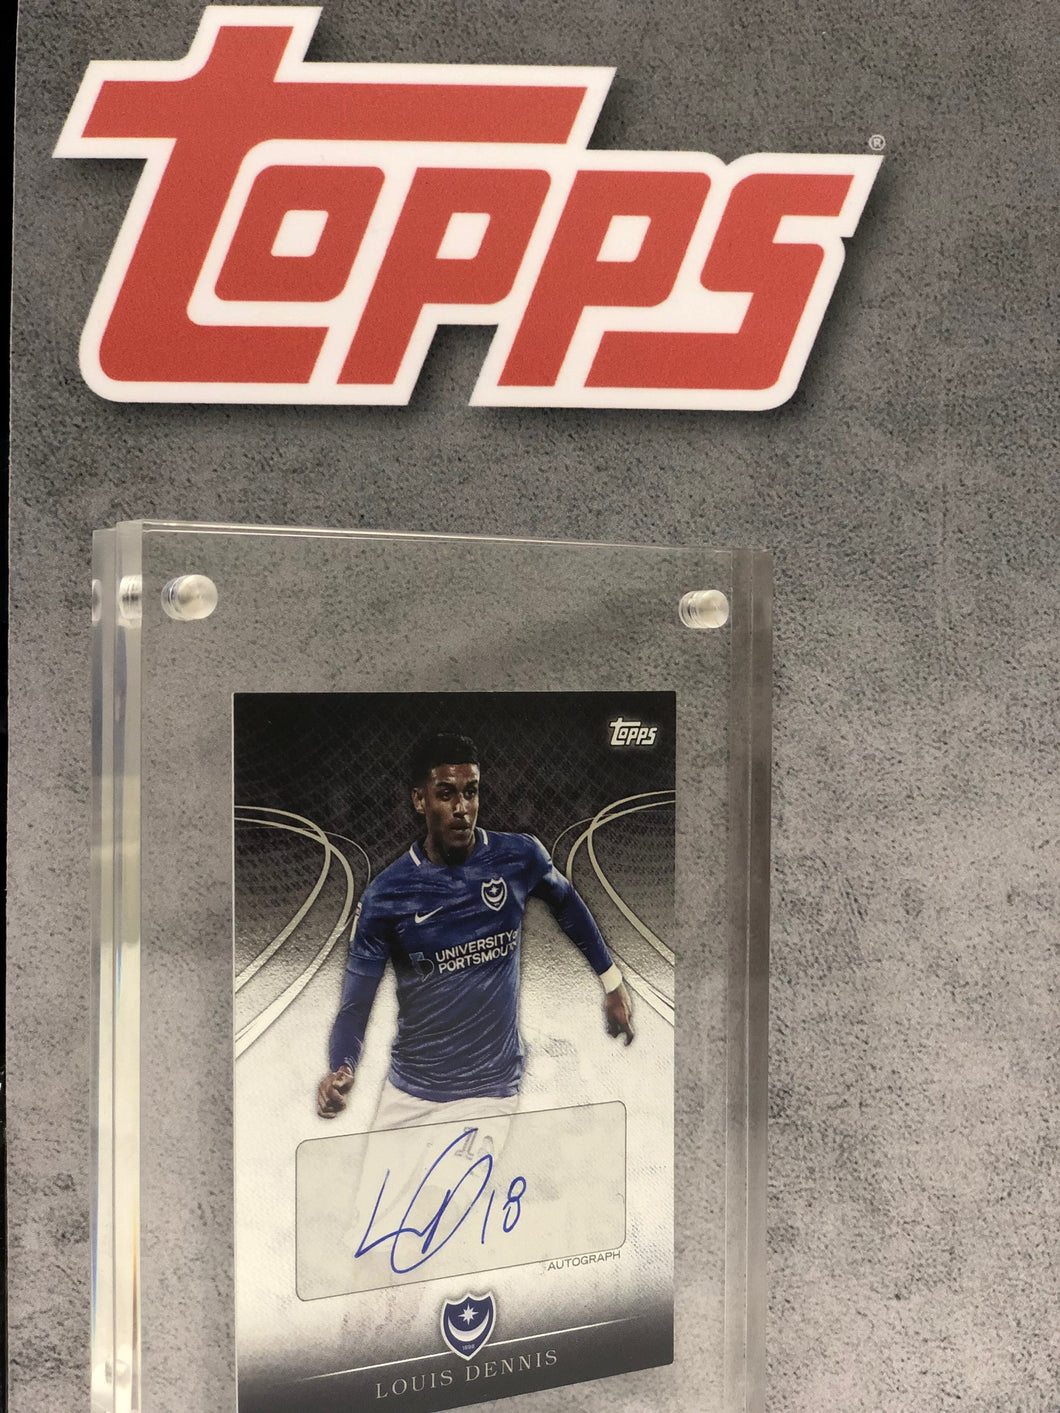 Louis Dennis Framed and Signed 2018/19 Topps Card